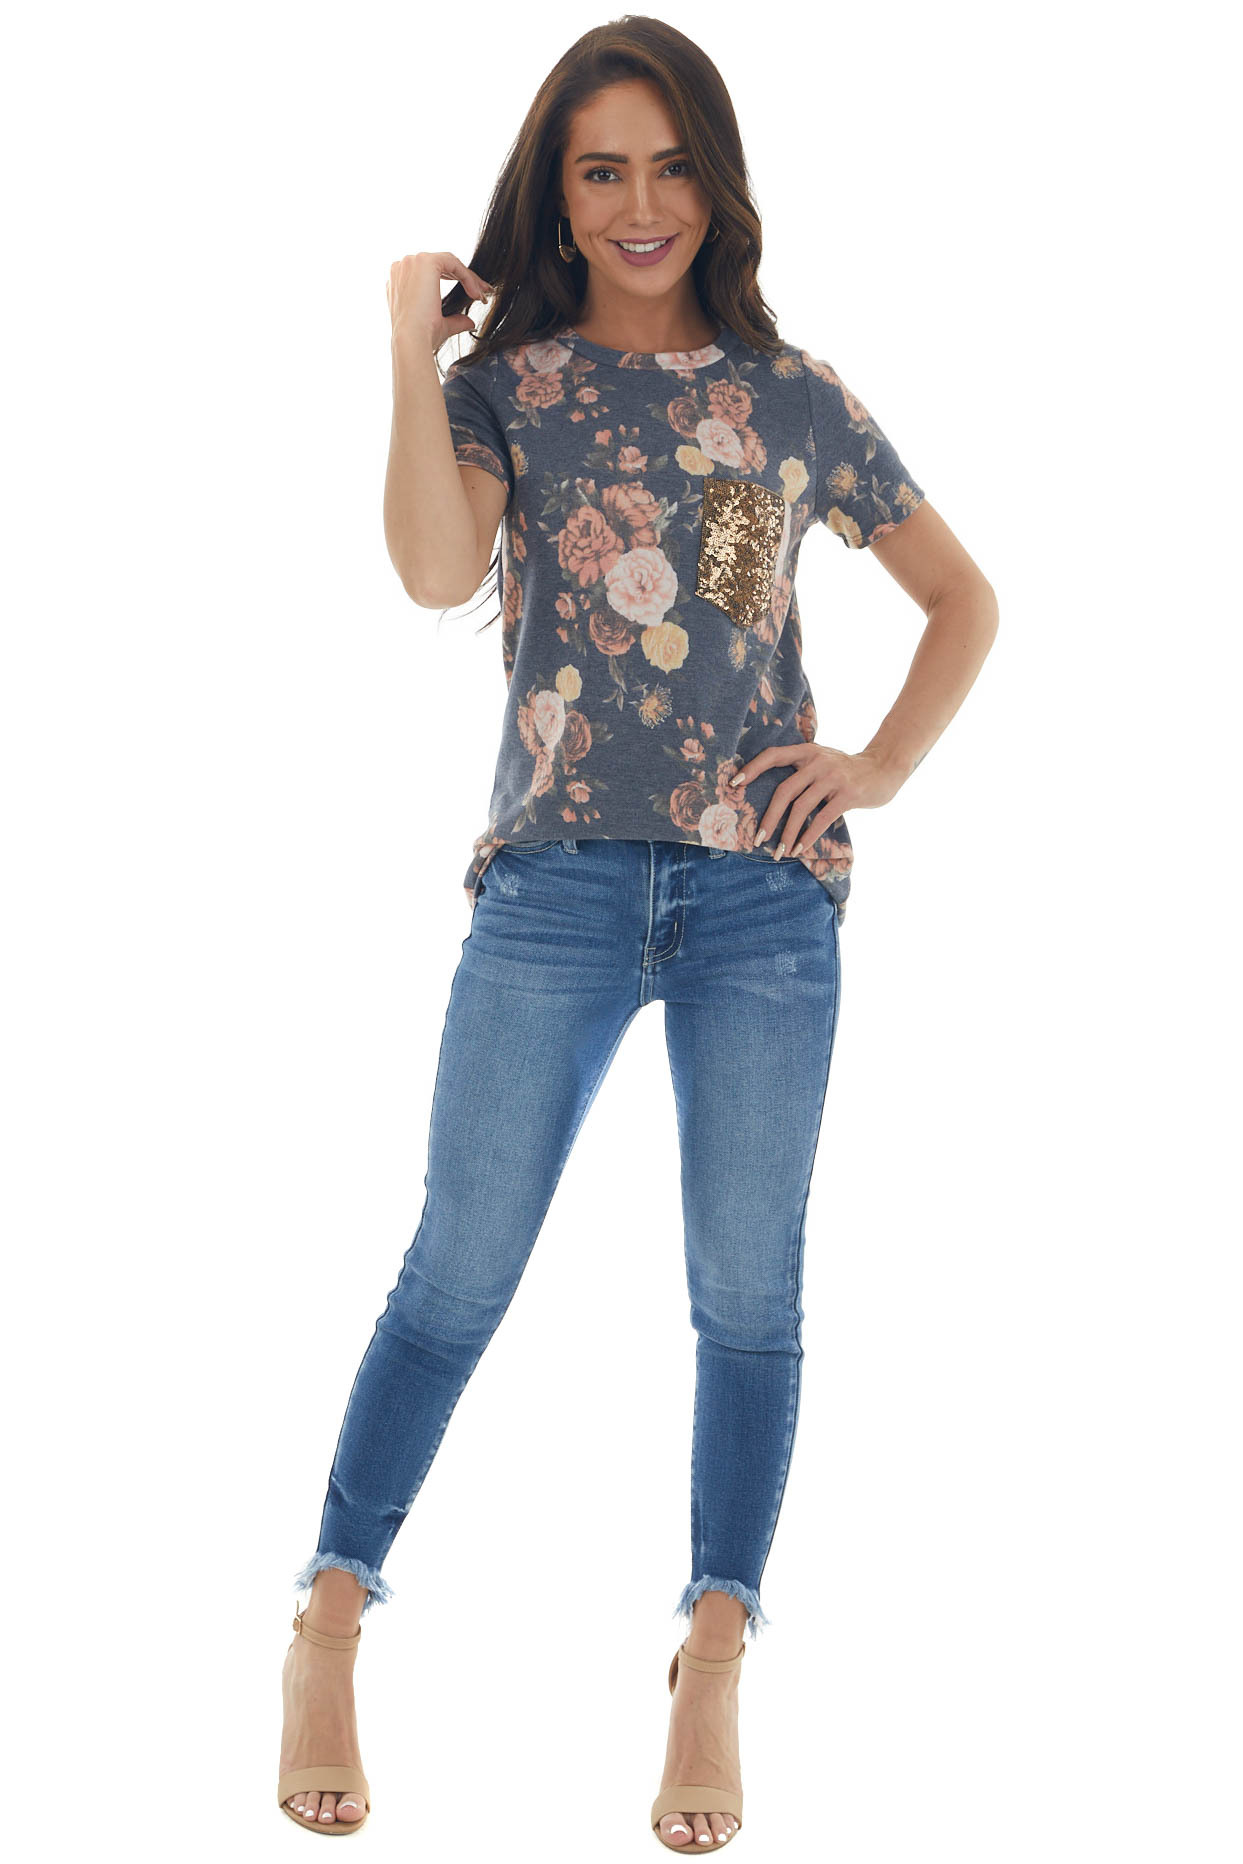 Stormy Blue Floral Top with Gold Sequin Pocket